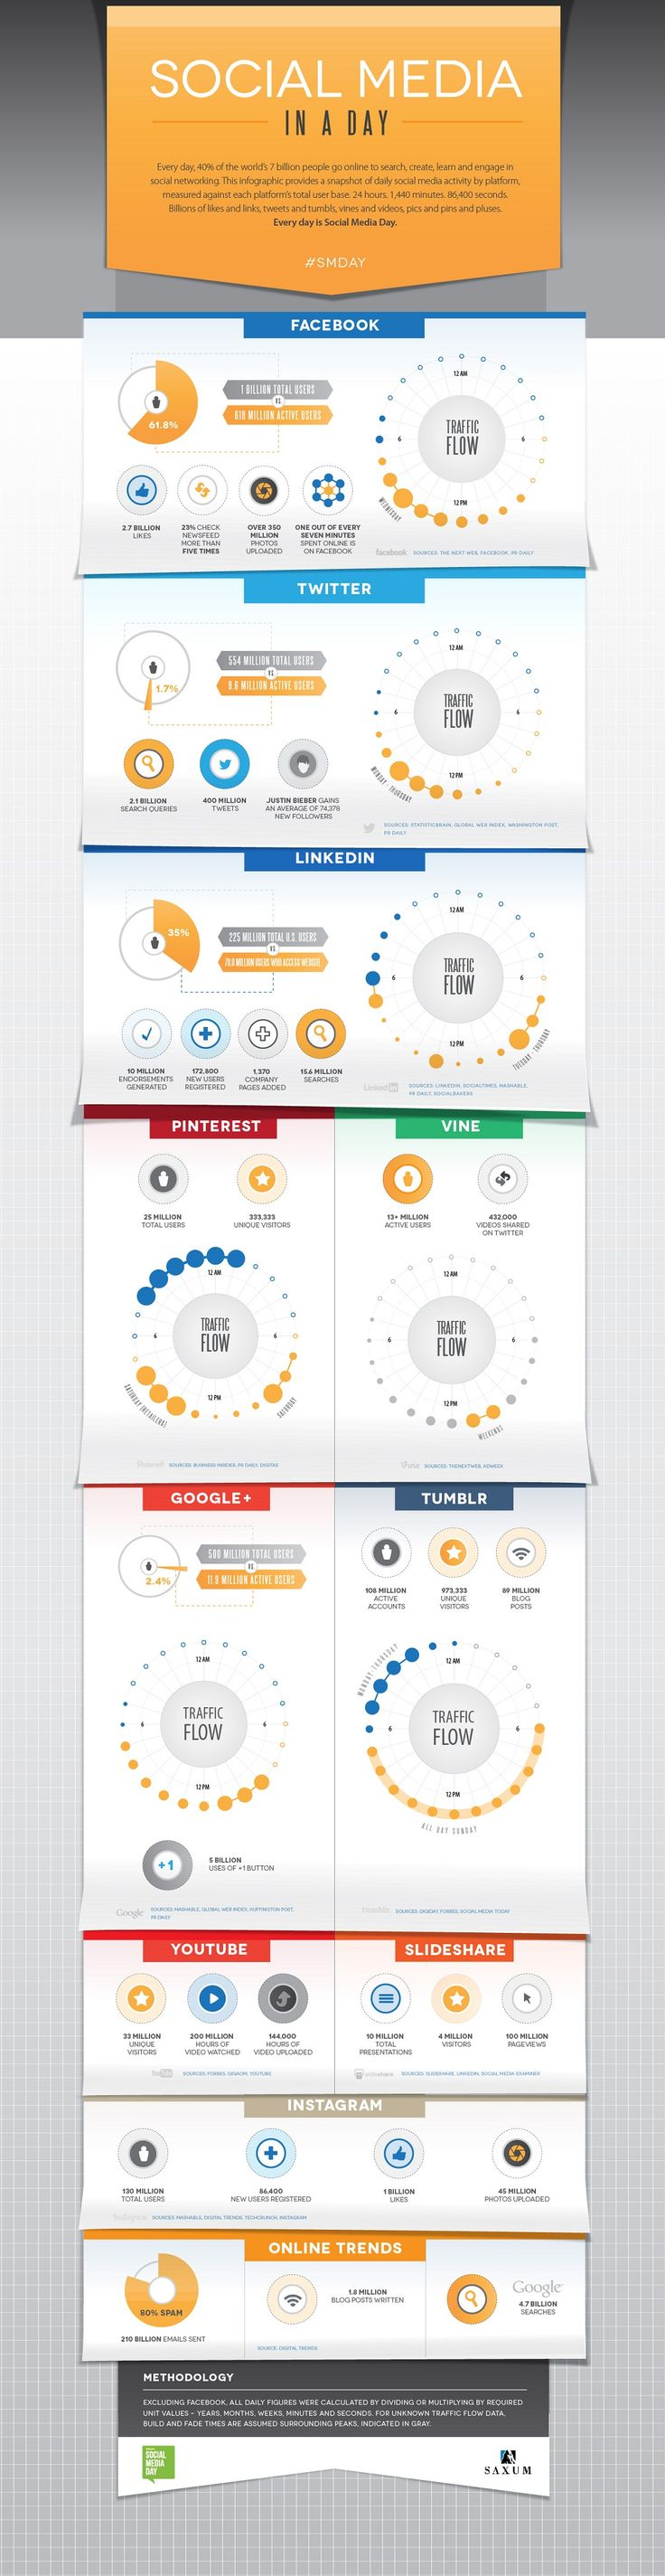 What Does a Day in Social Media Look Like? [Infographic]